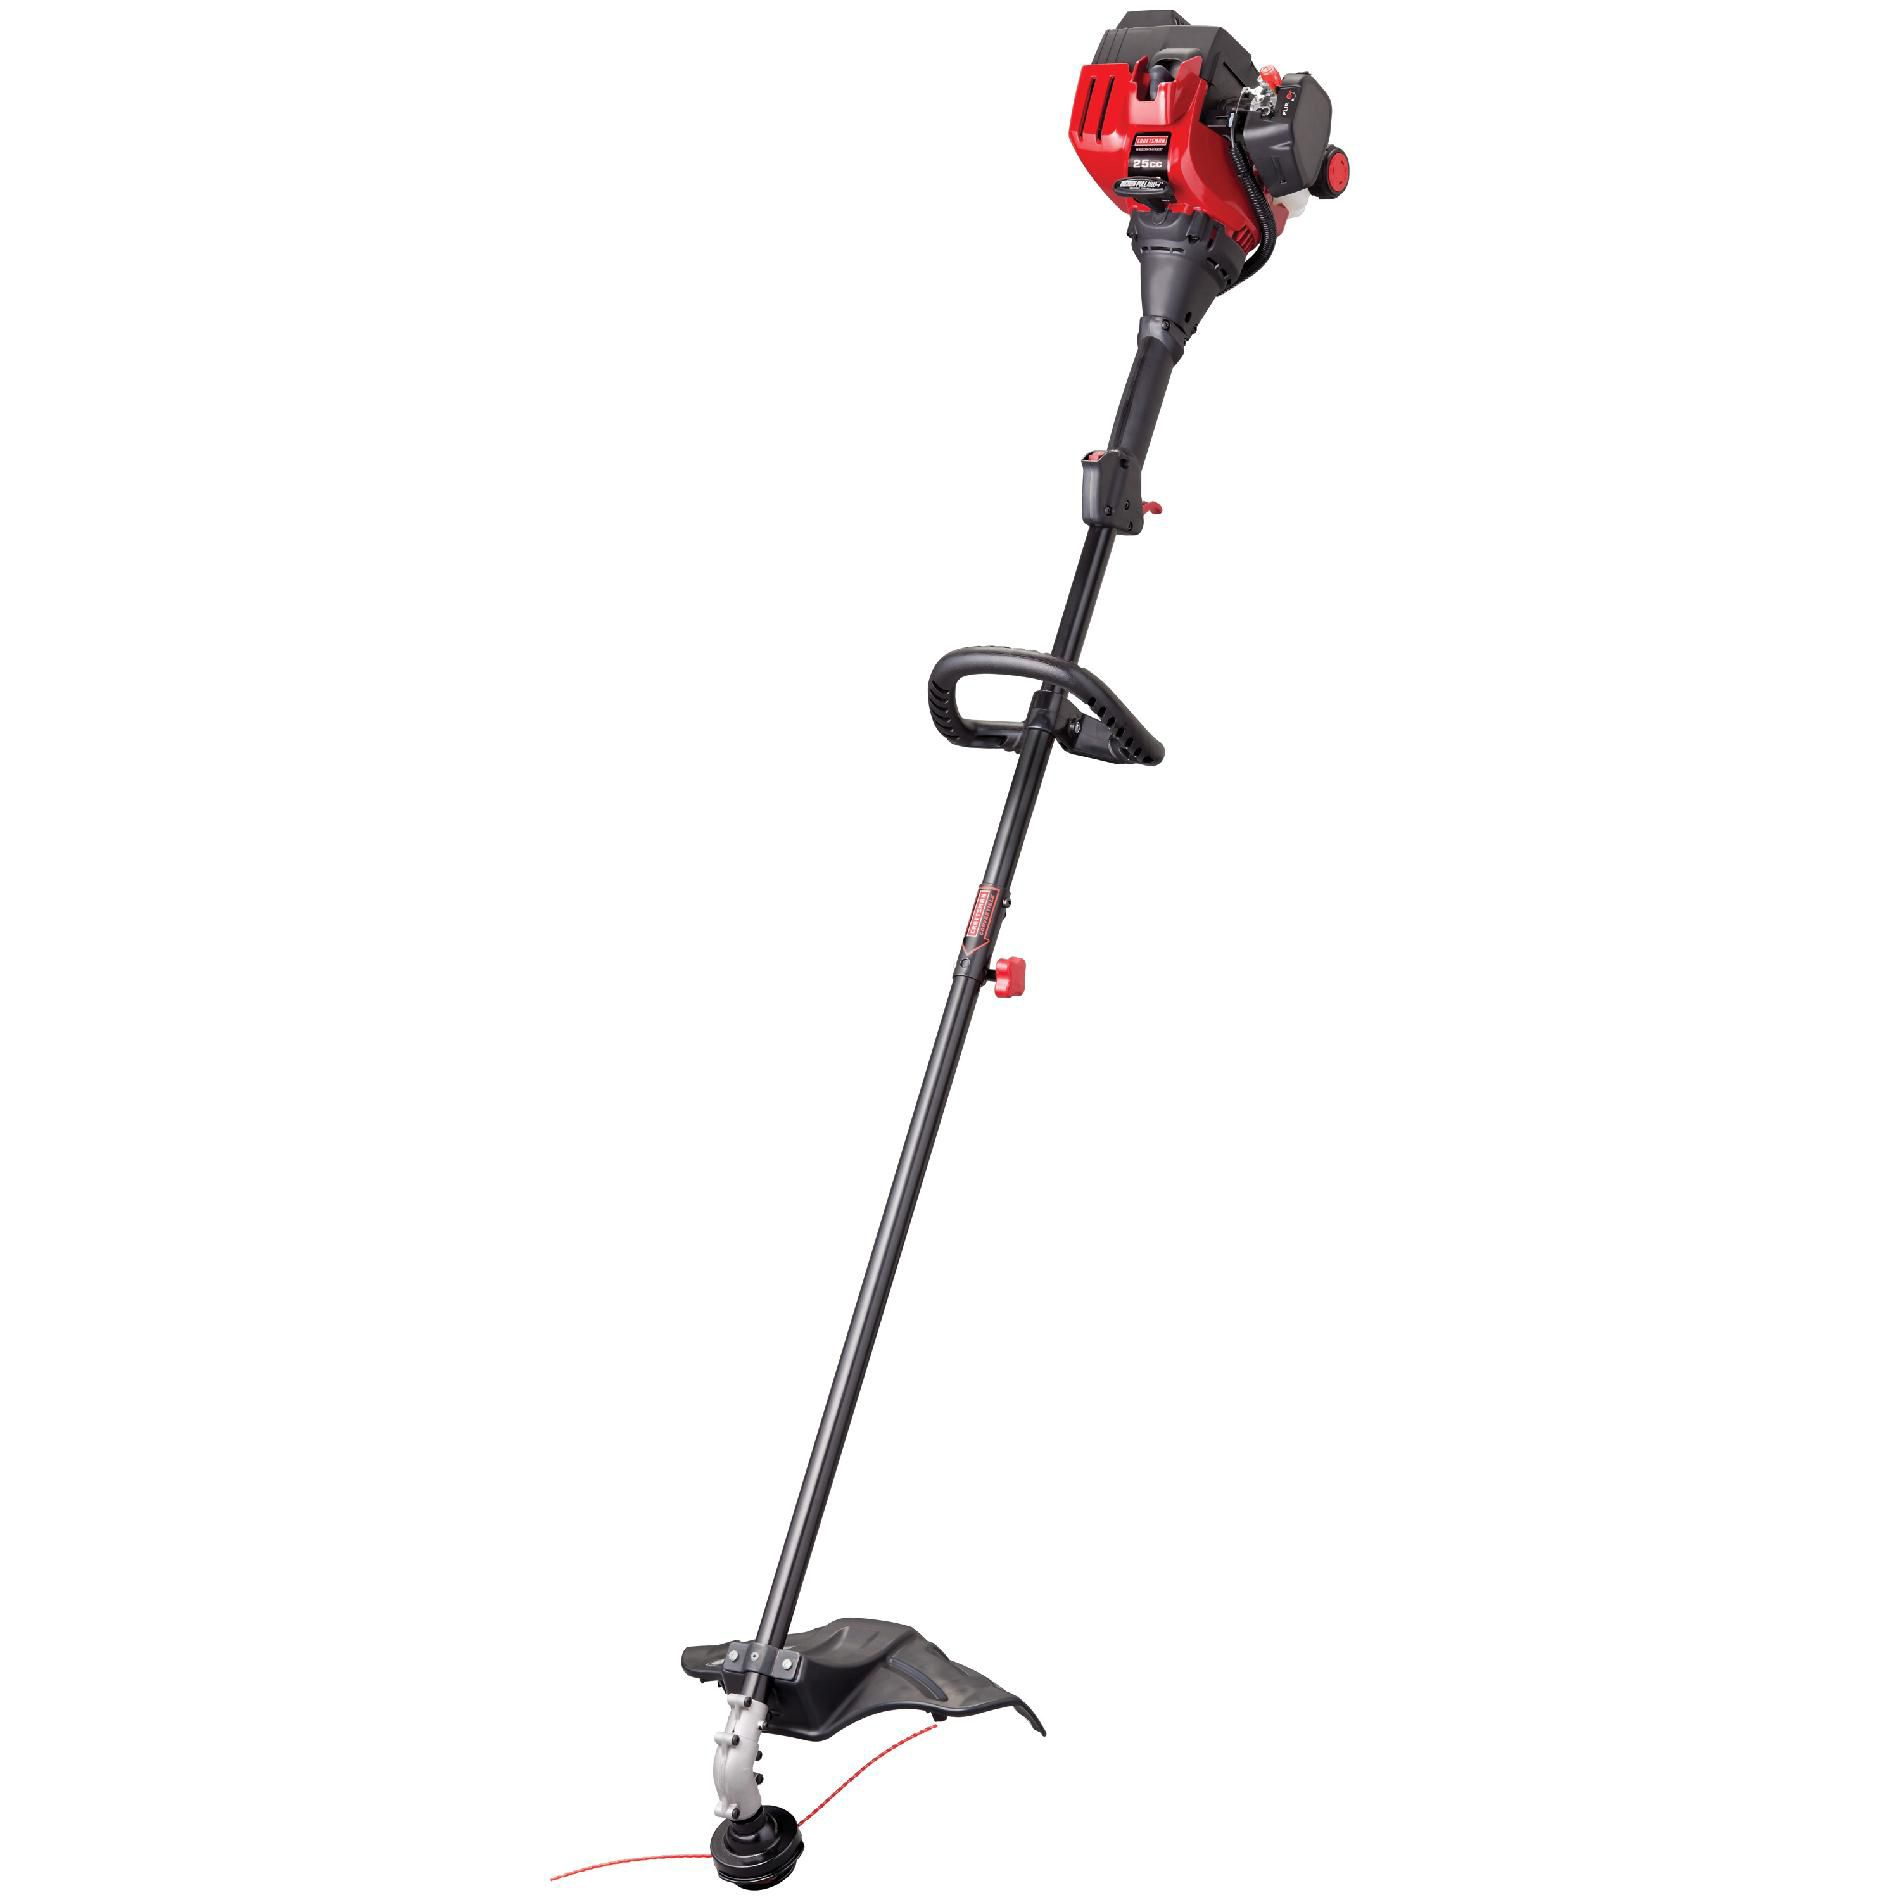 Craftsman 32cc* 4-Cycle Straight Shaft Weedwacker™ Gas